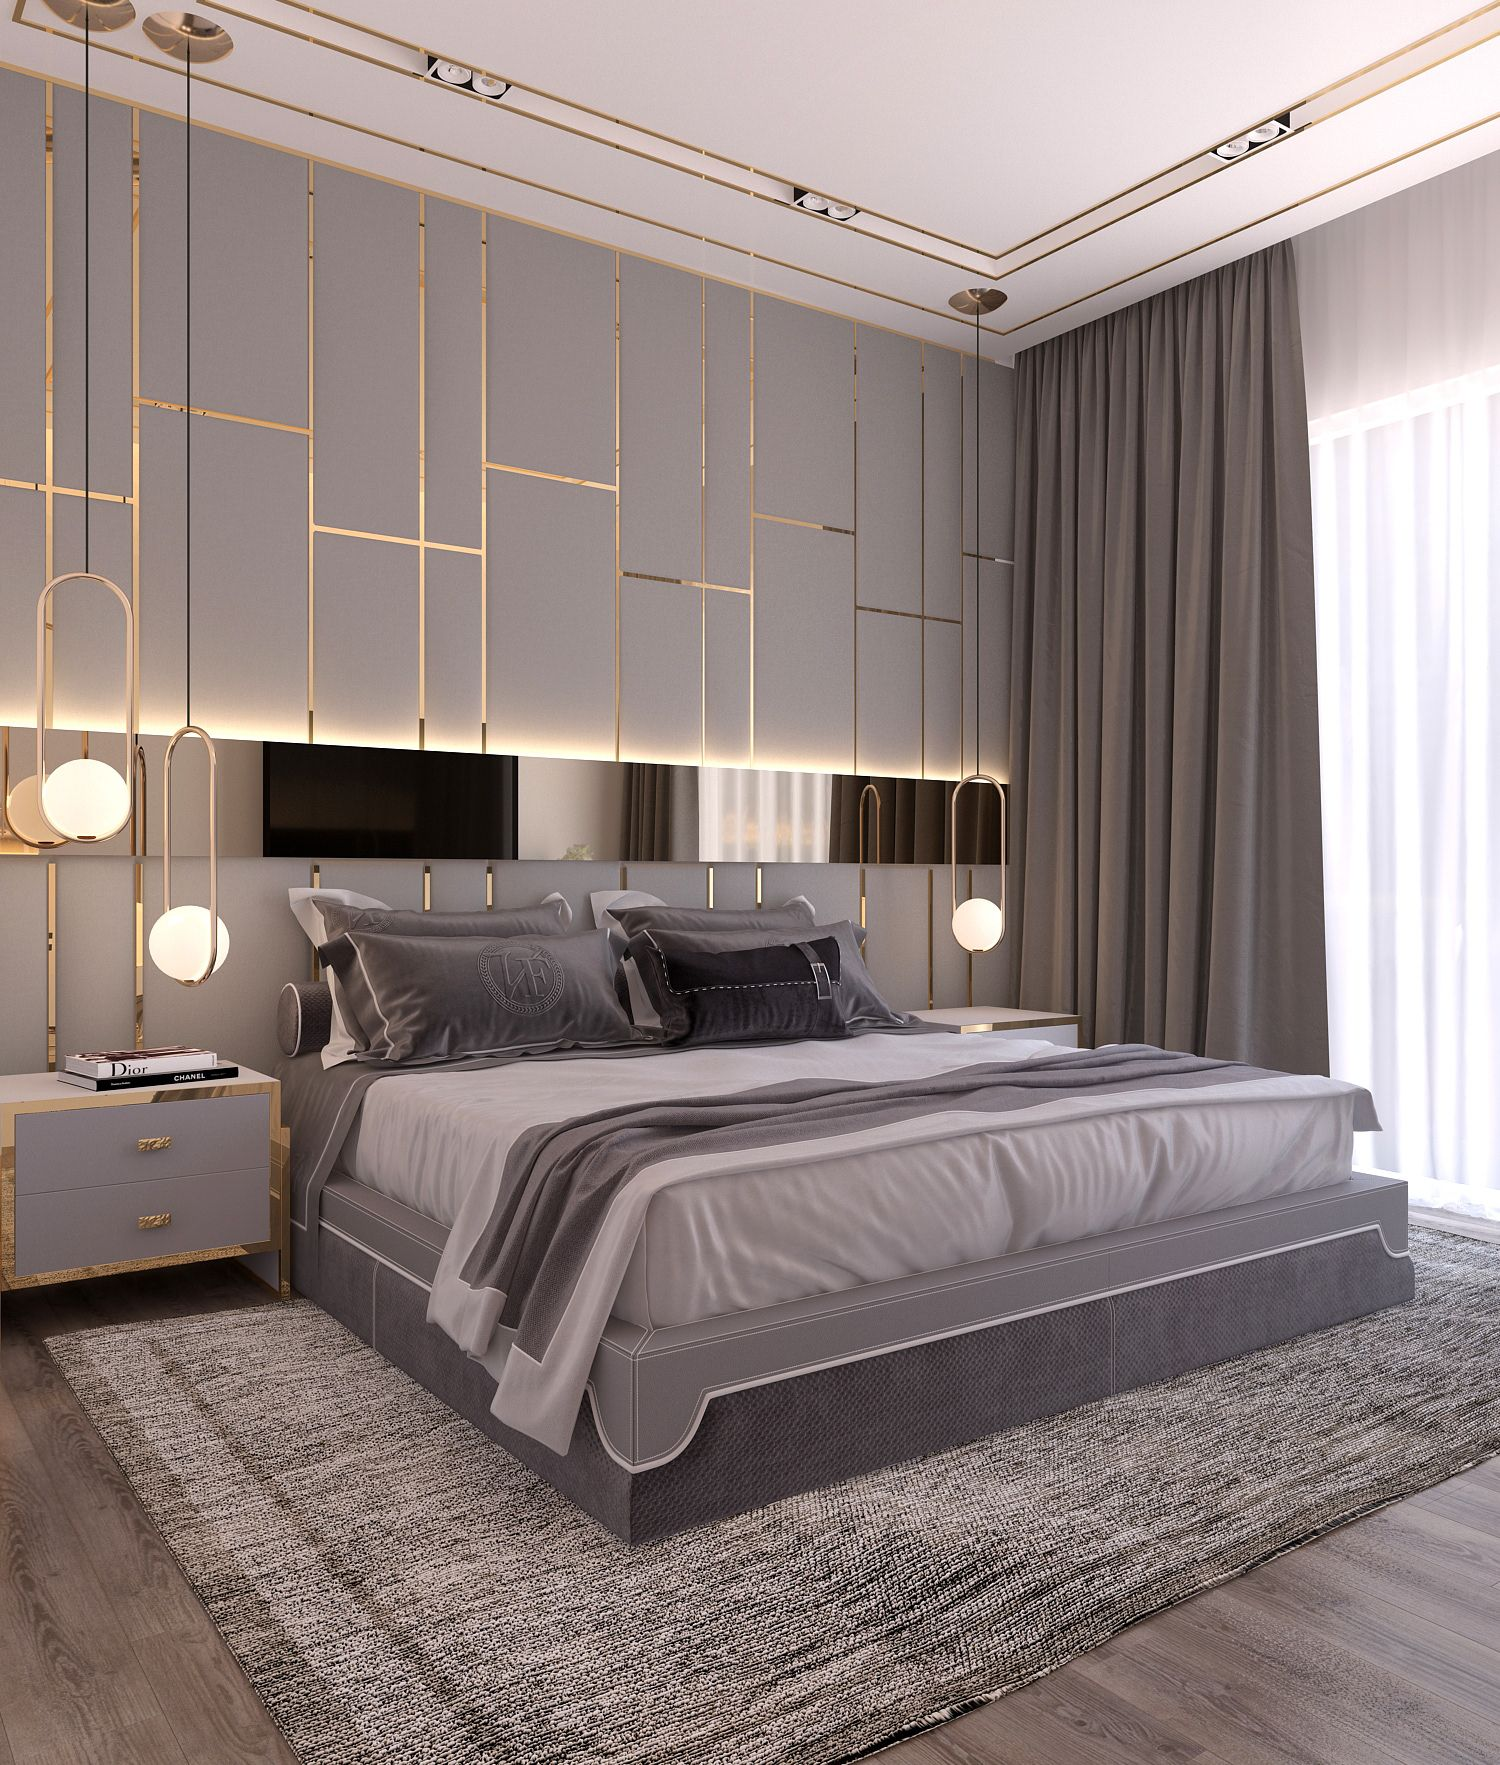 Modern Bedroom Interior Design: Modern Style Bedroom *Dubai Project On Behance